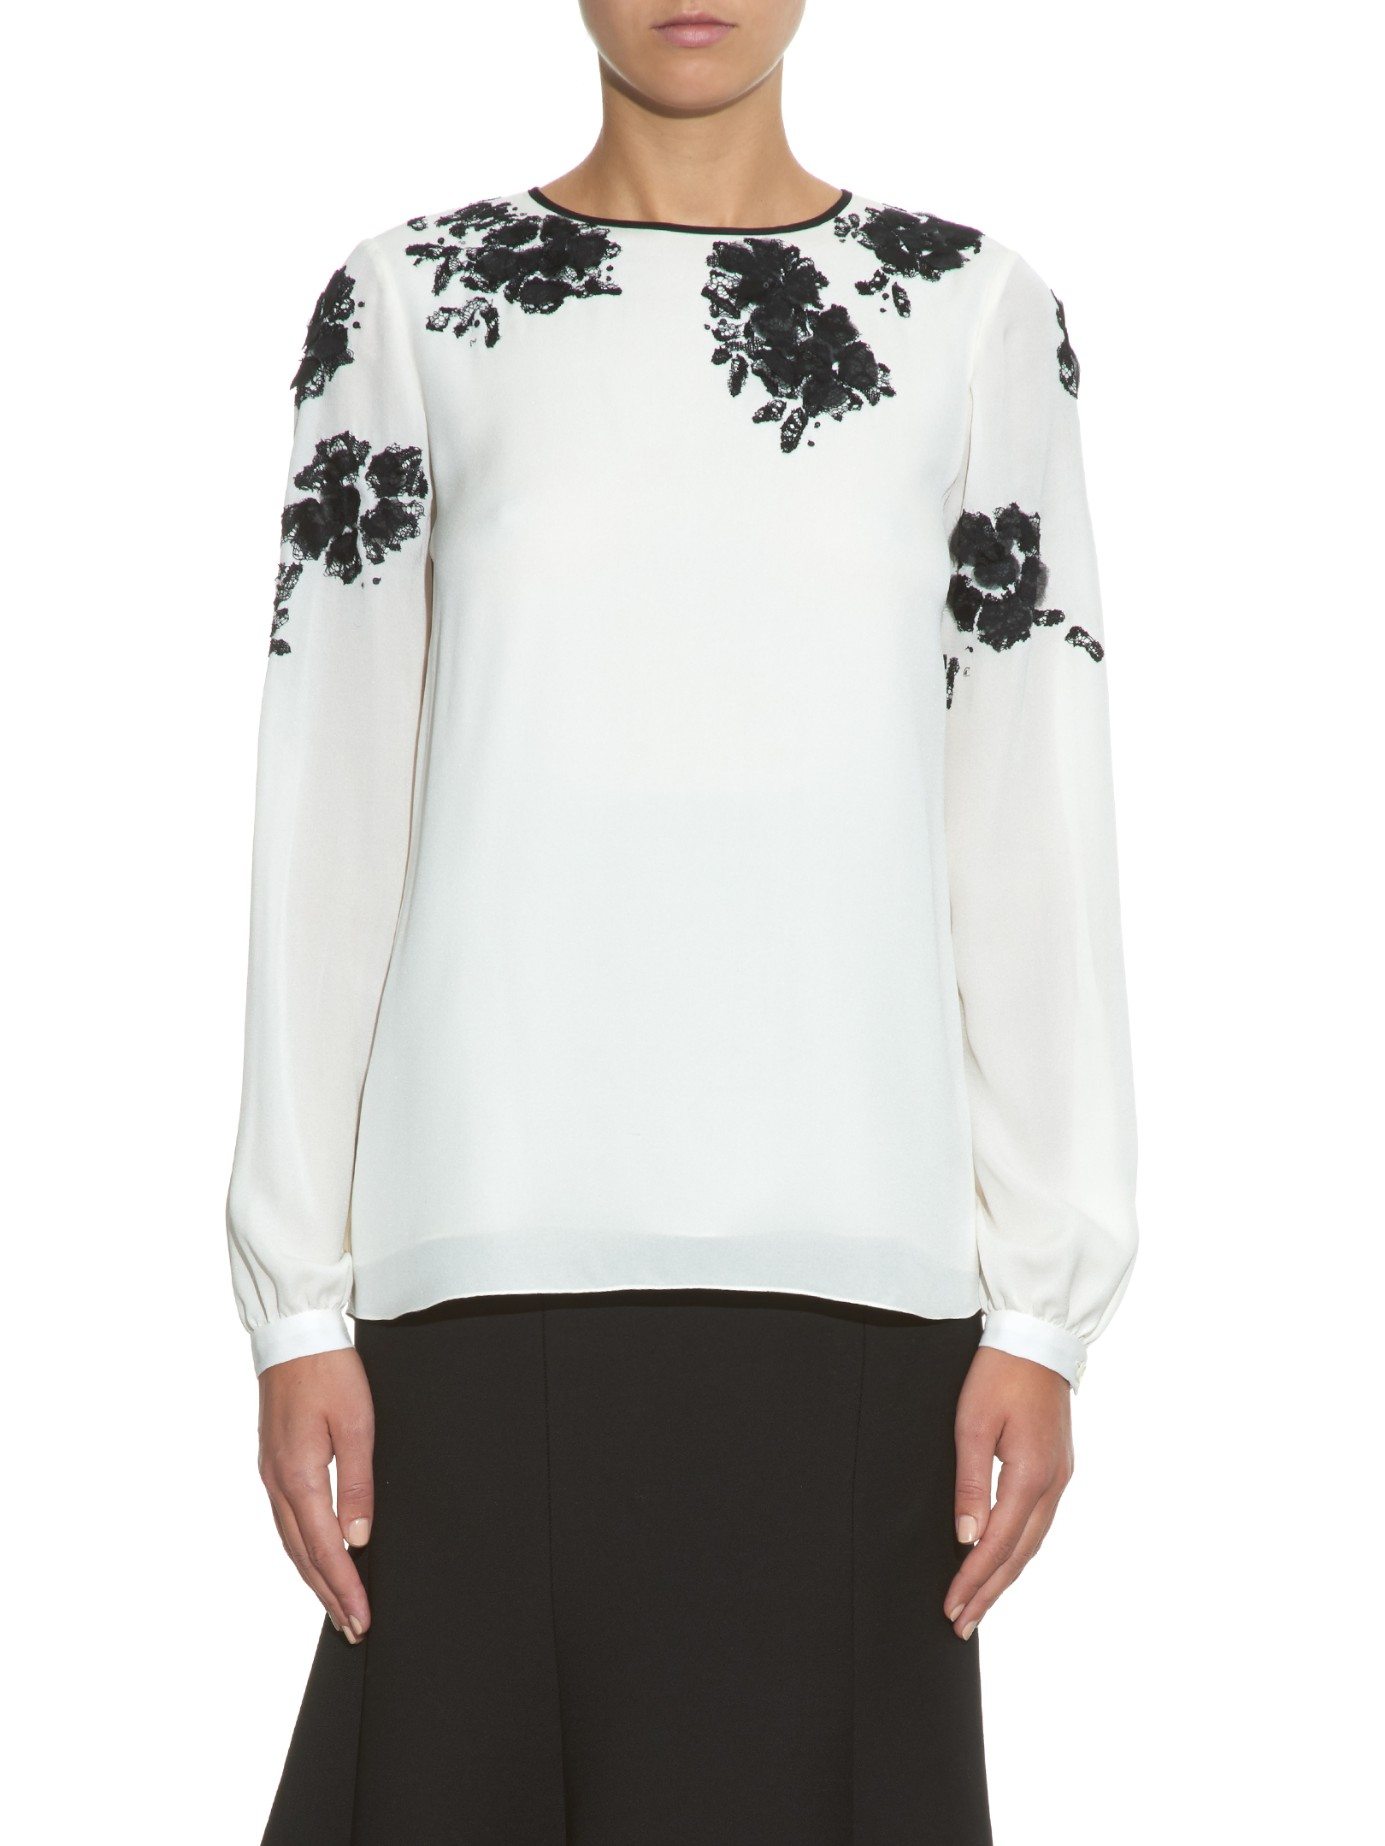 86d487f4618bc Lyst - Oscar de la Renta Floral-lace Embroidery Silk Blouse in Black